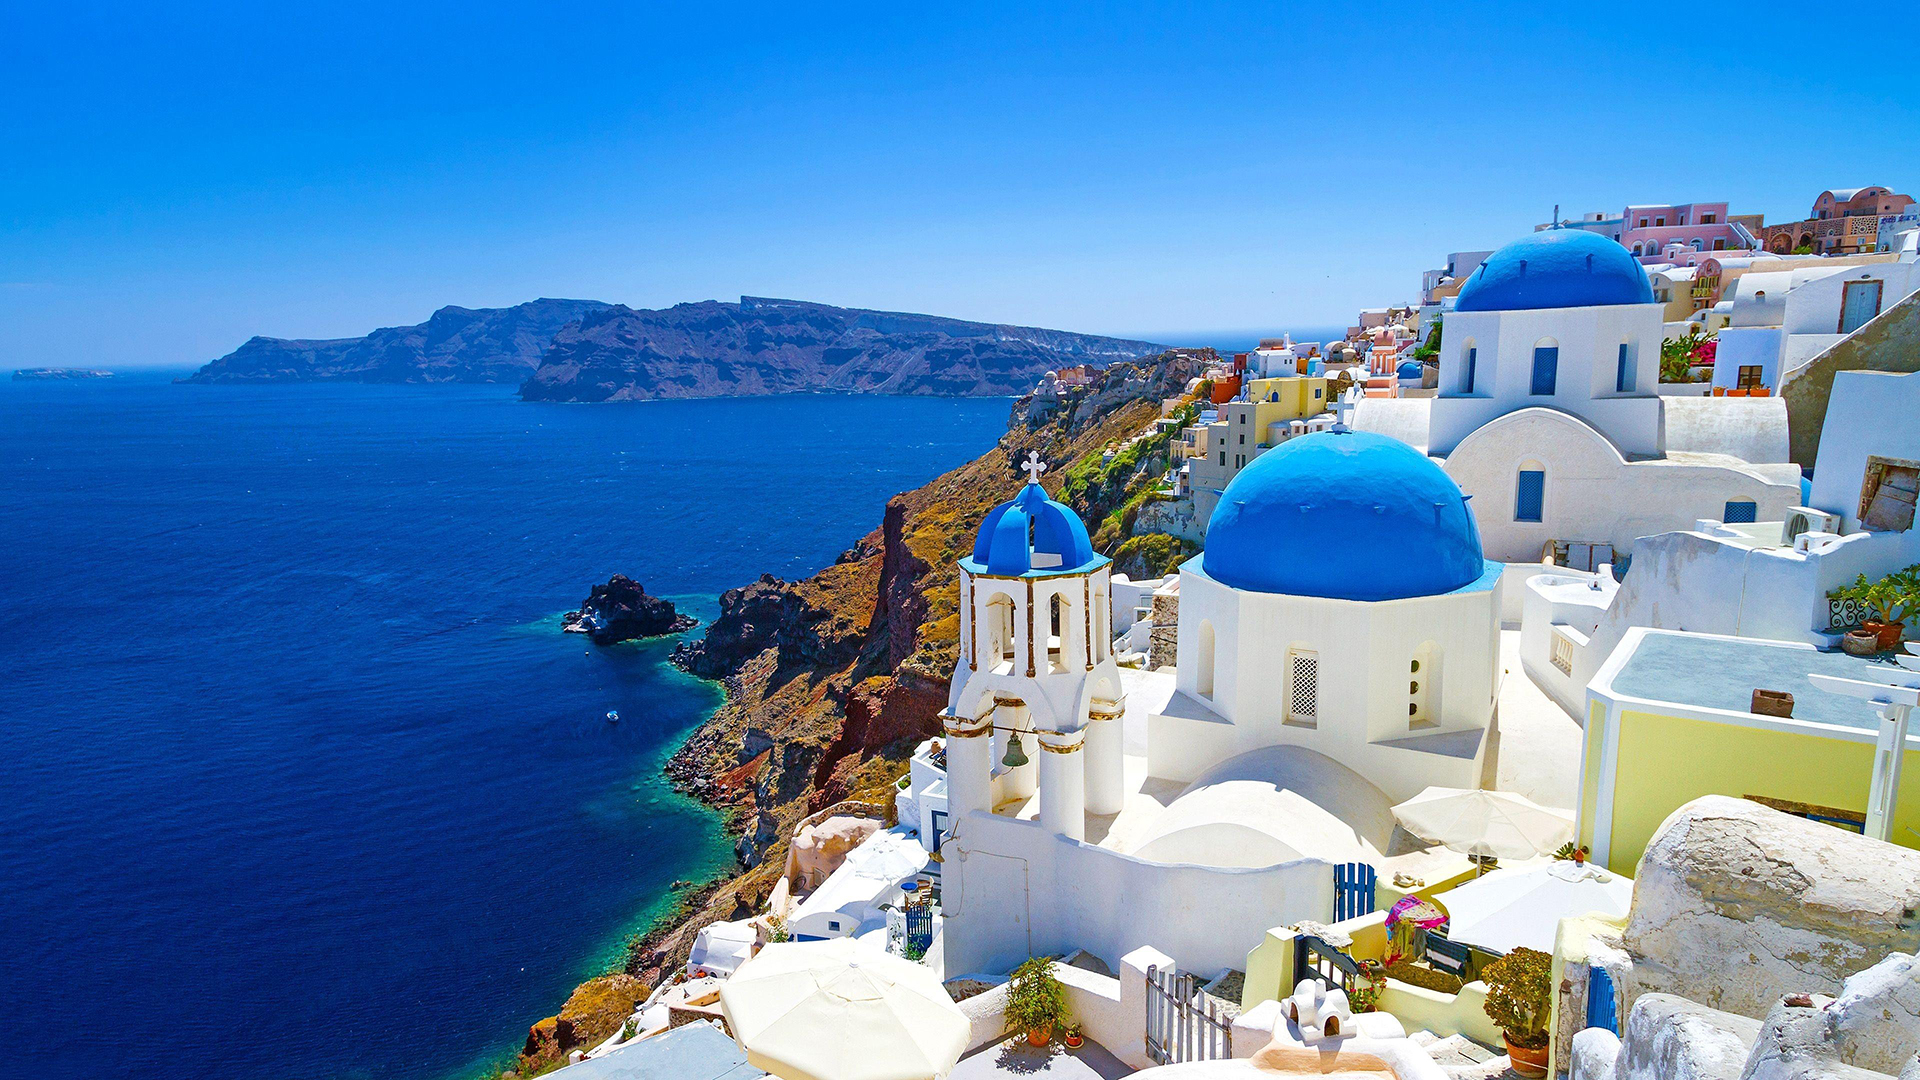 View of Santorini. Virtual background to use on Zoom, Microsoft Teams, Skype, Google Meet, WebEx or any other compatible app.